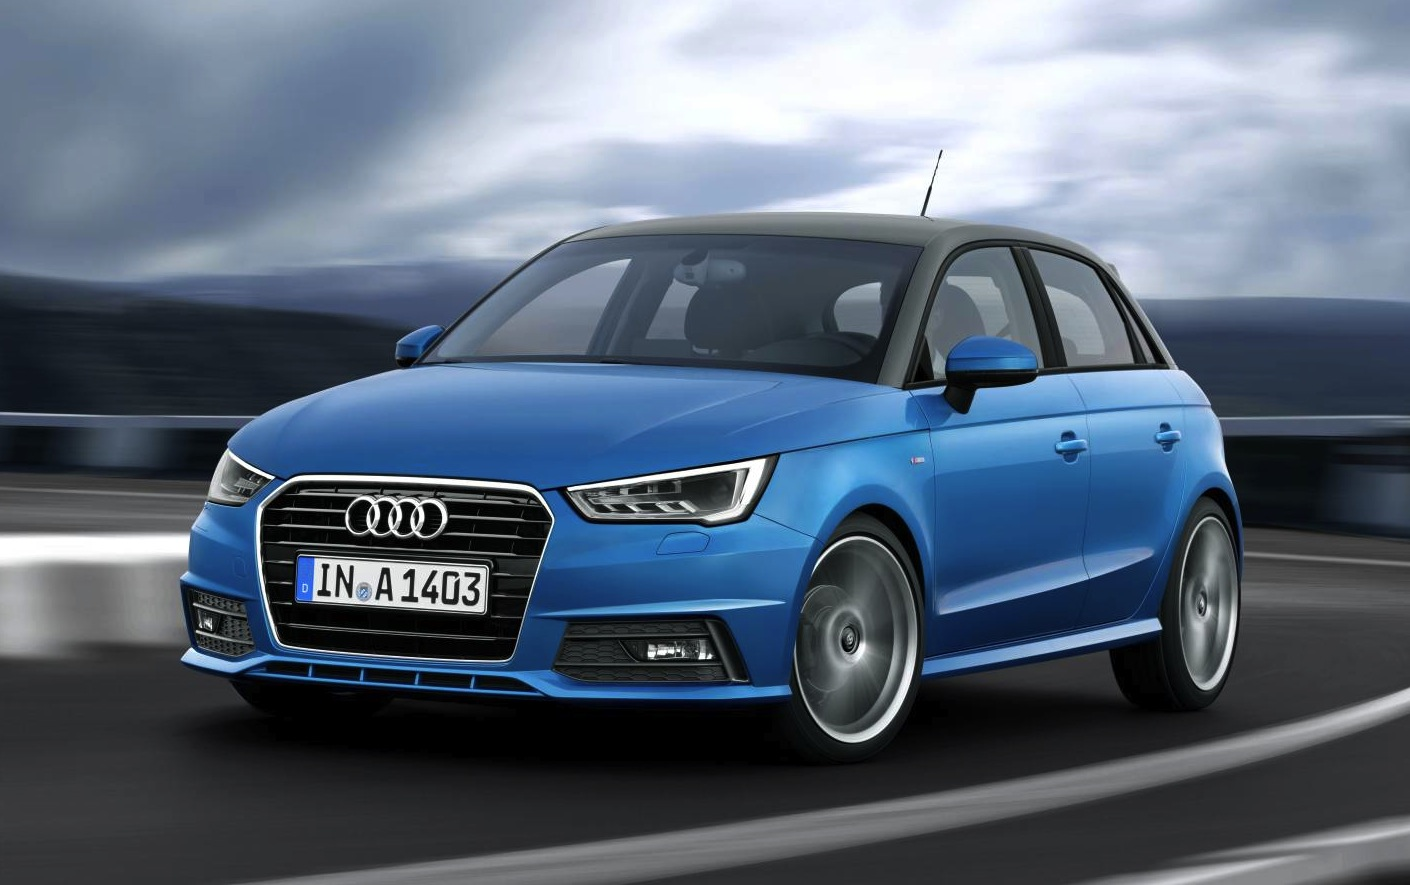 2015 Audi A1 & A1 Sportback Revealed, New 3-cyl Engines